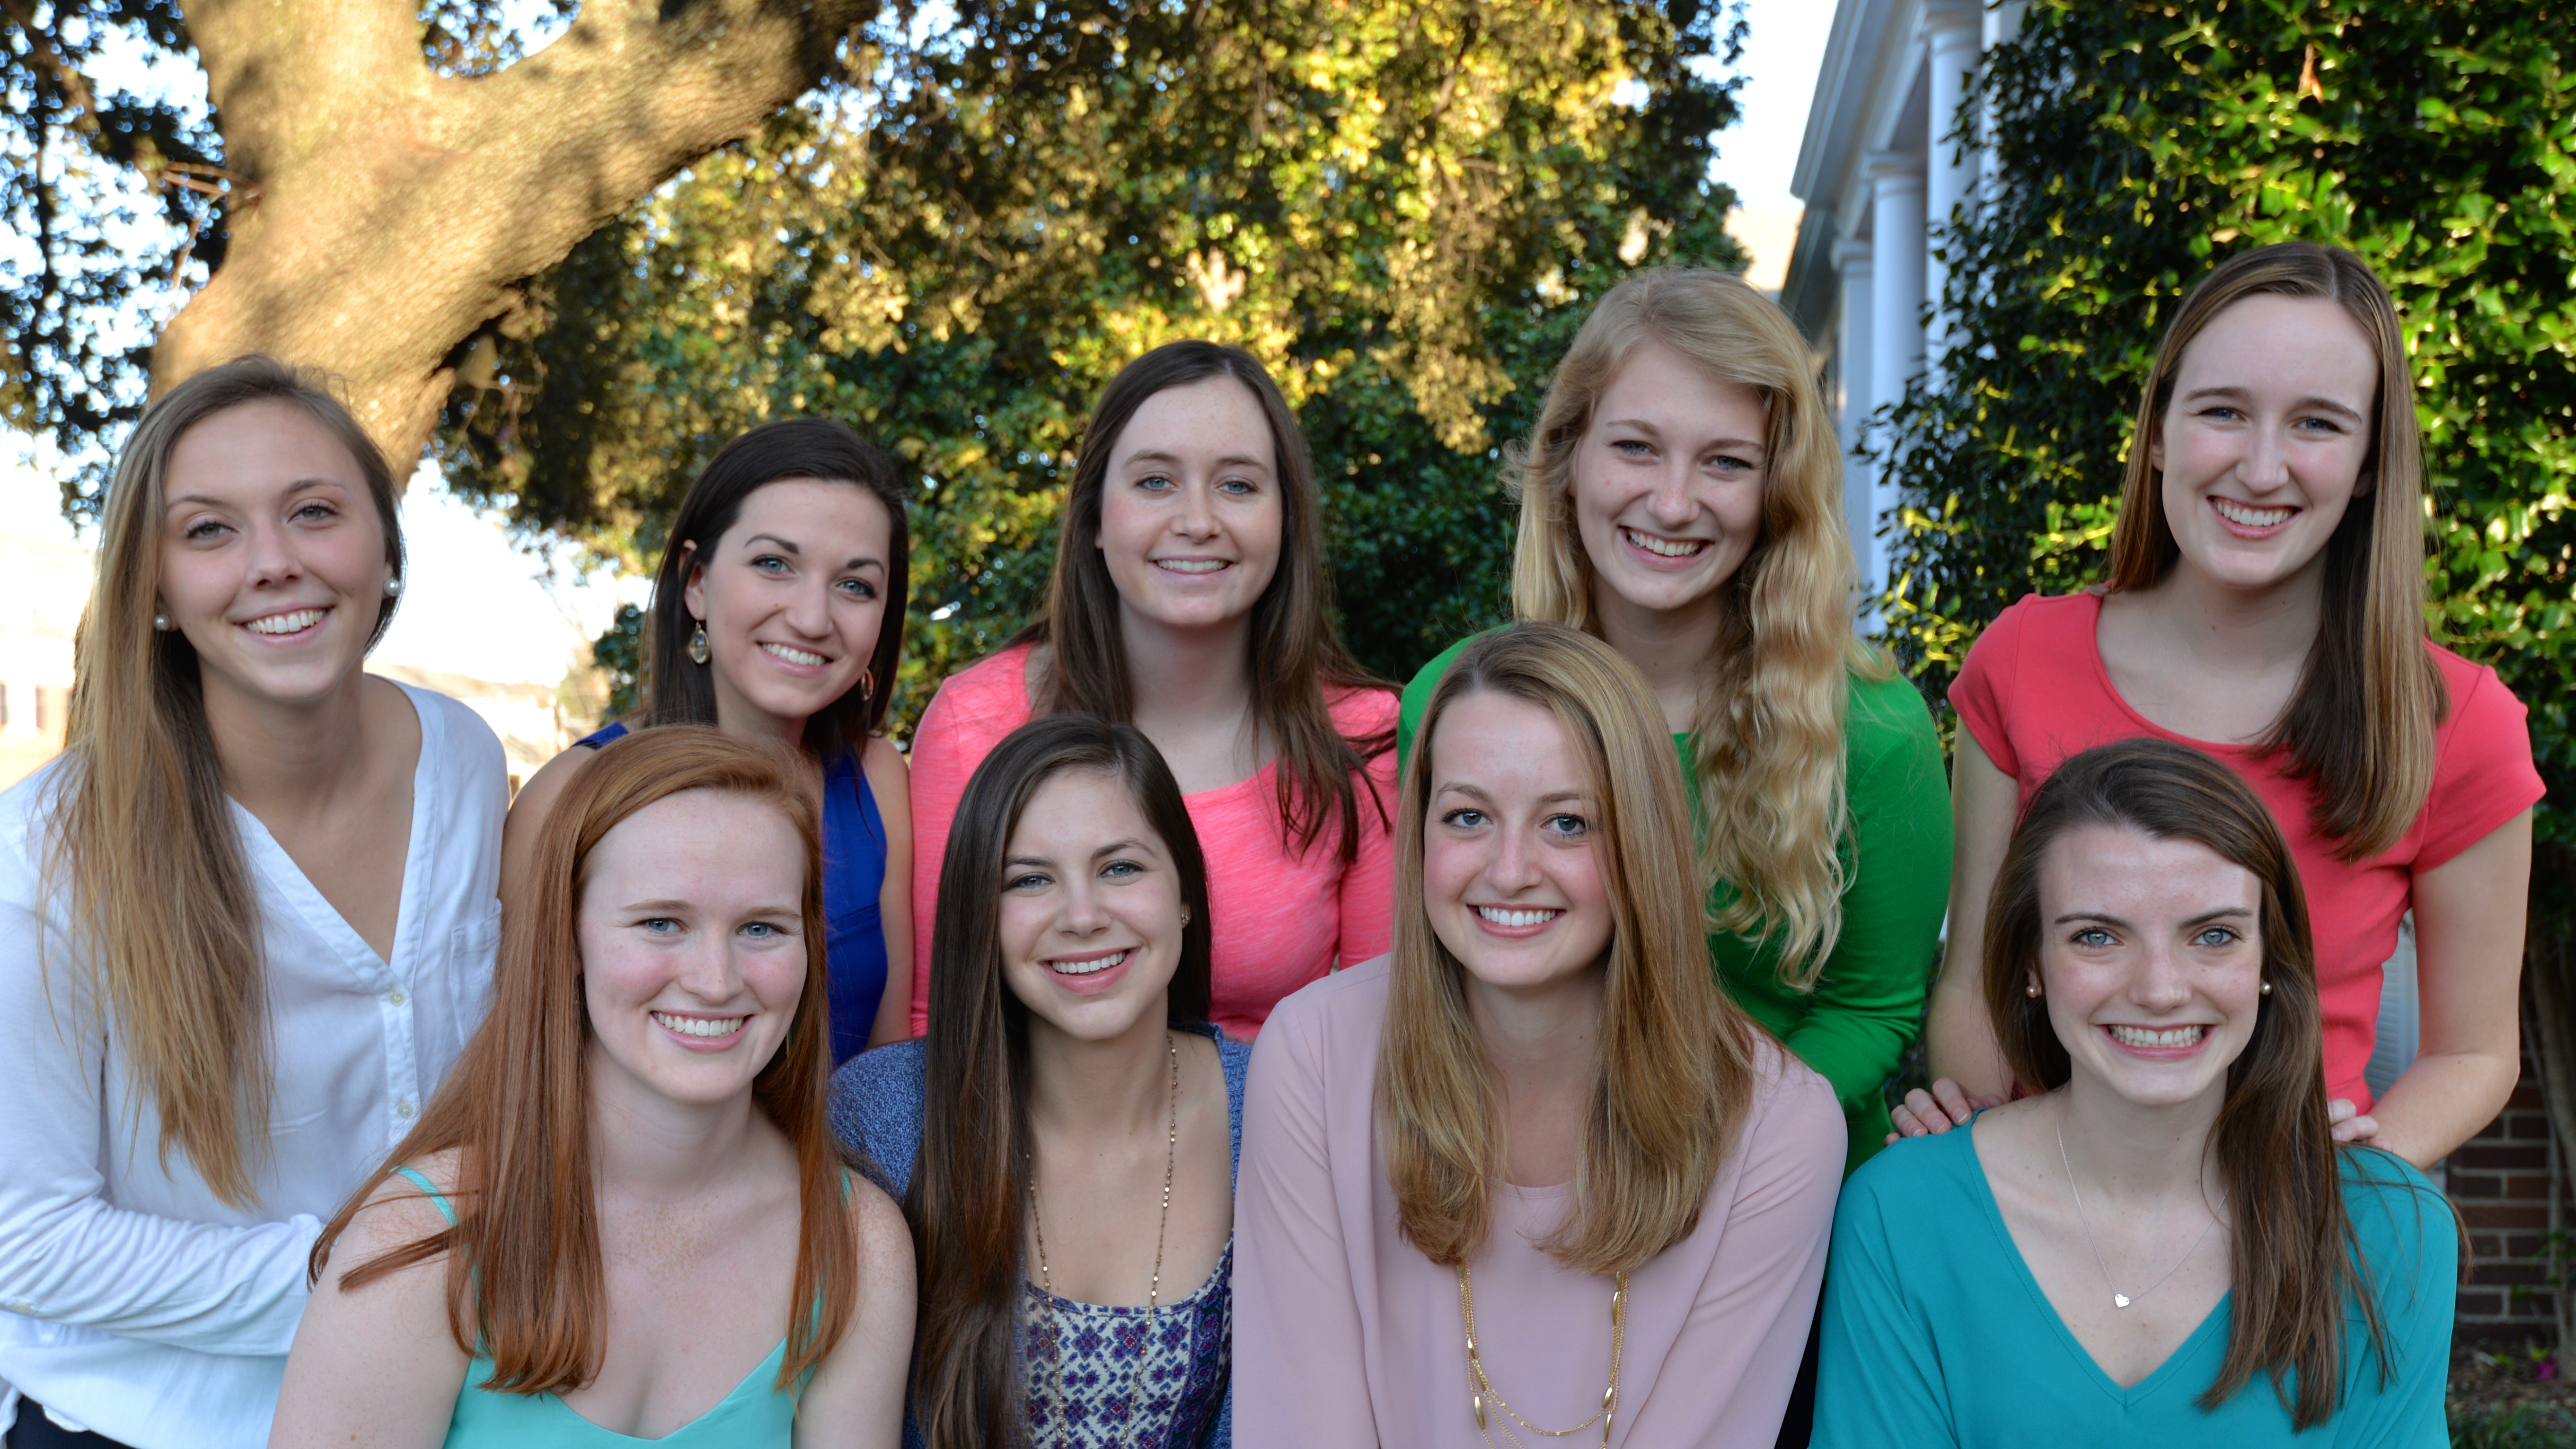 Emily Kate 78735 Instant Messages : Officers smu delta gamma